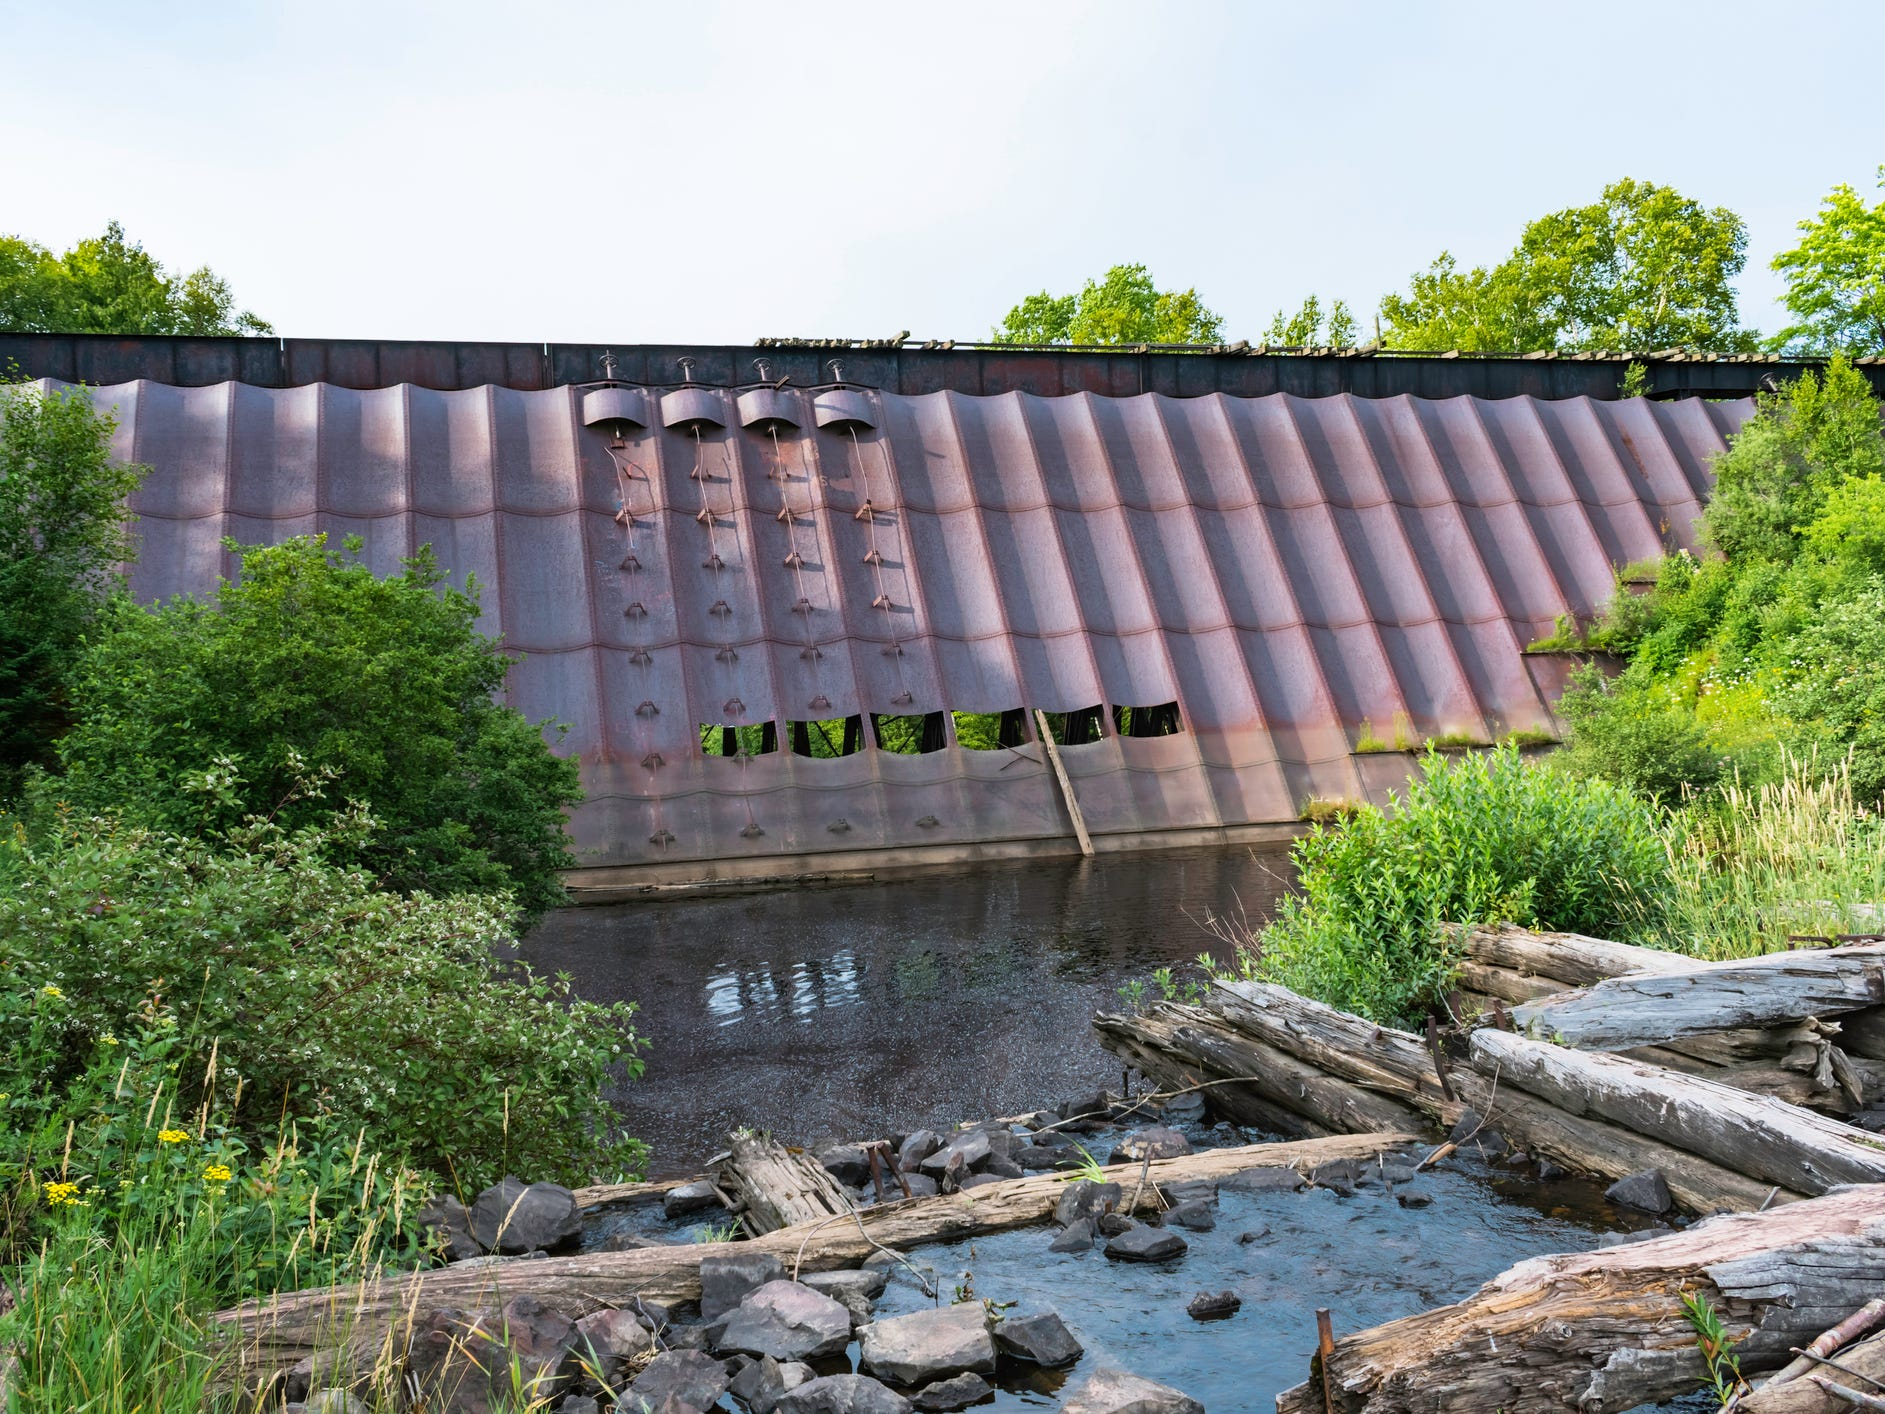 Redridge Steel Dam in Michigan.